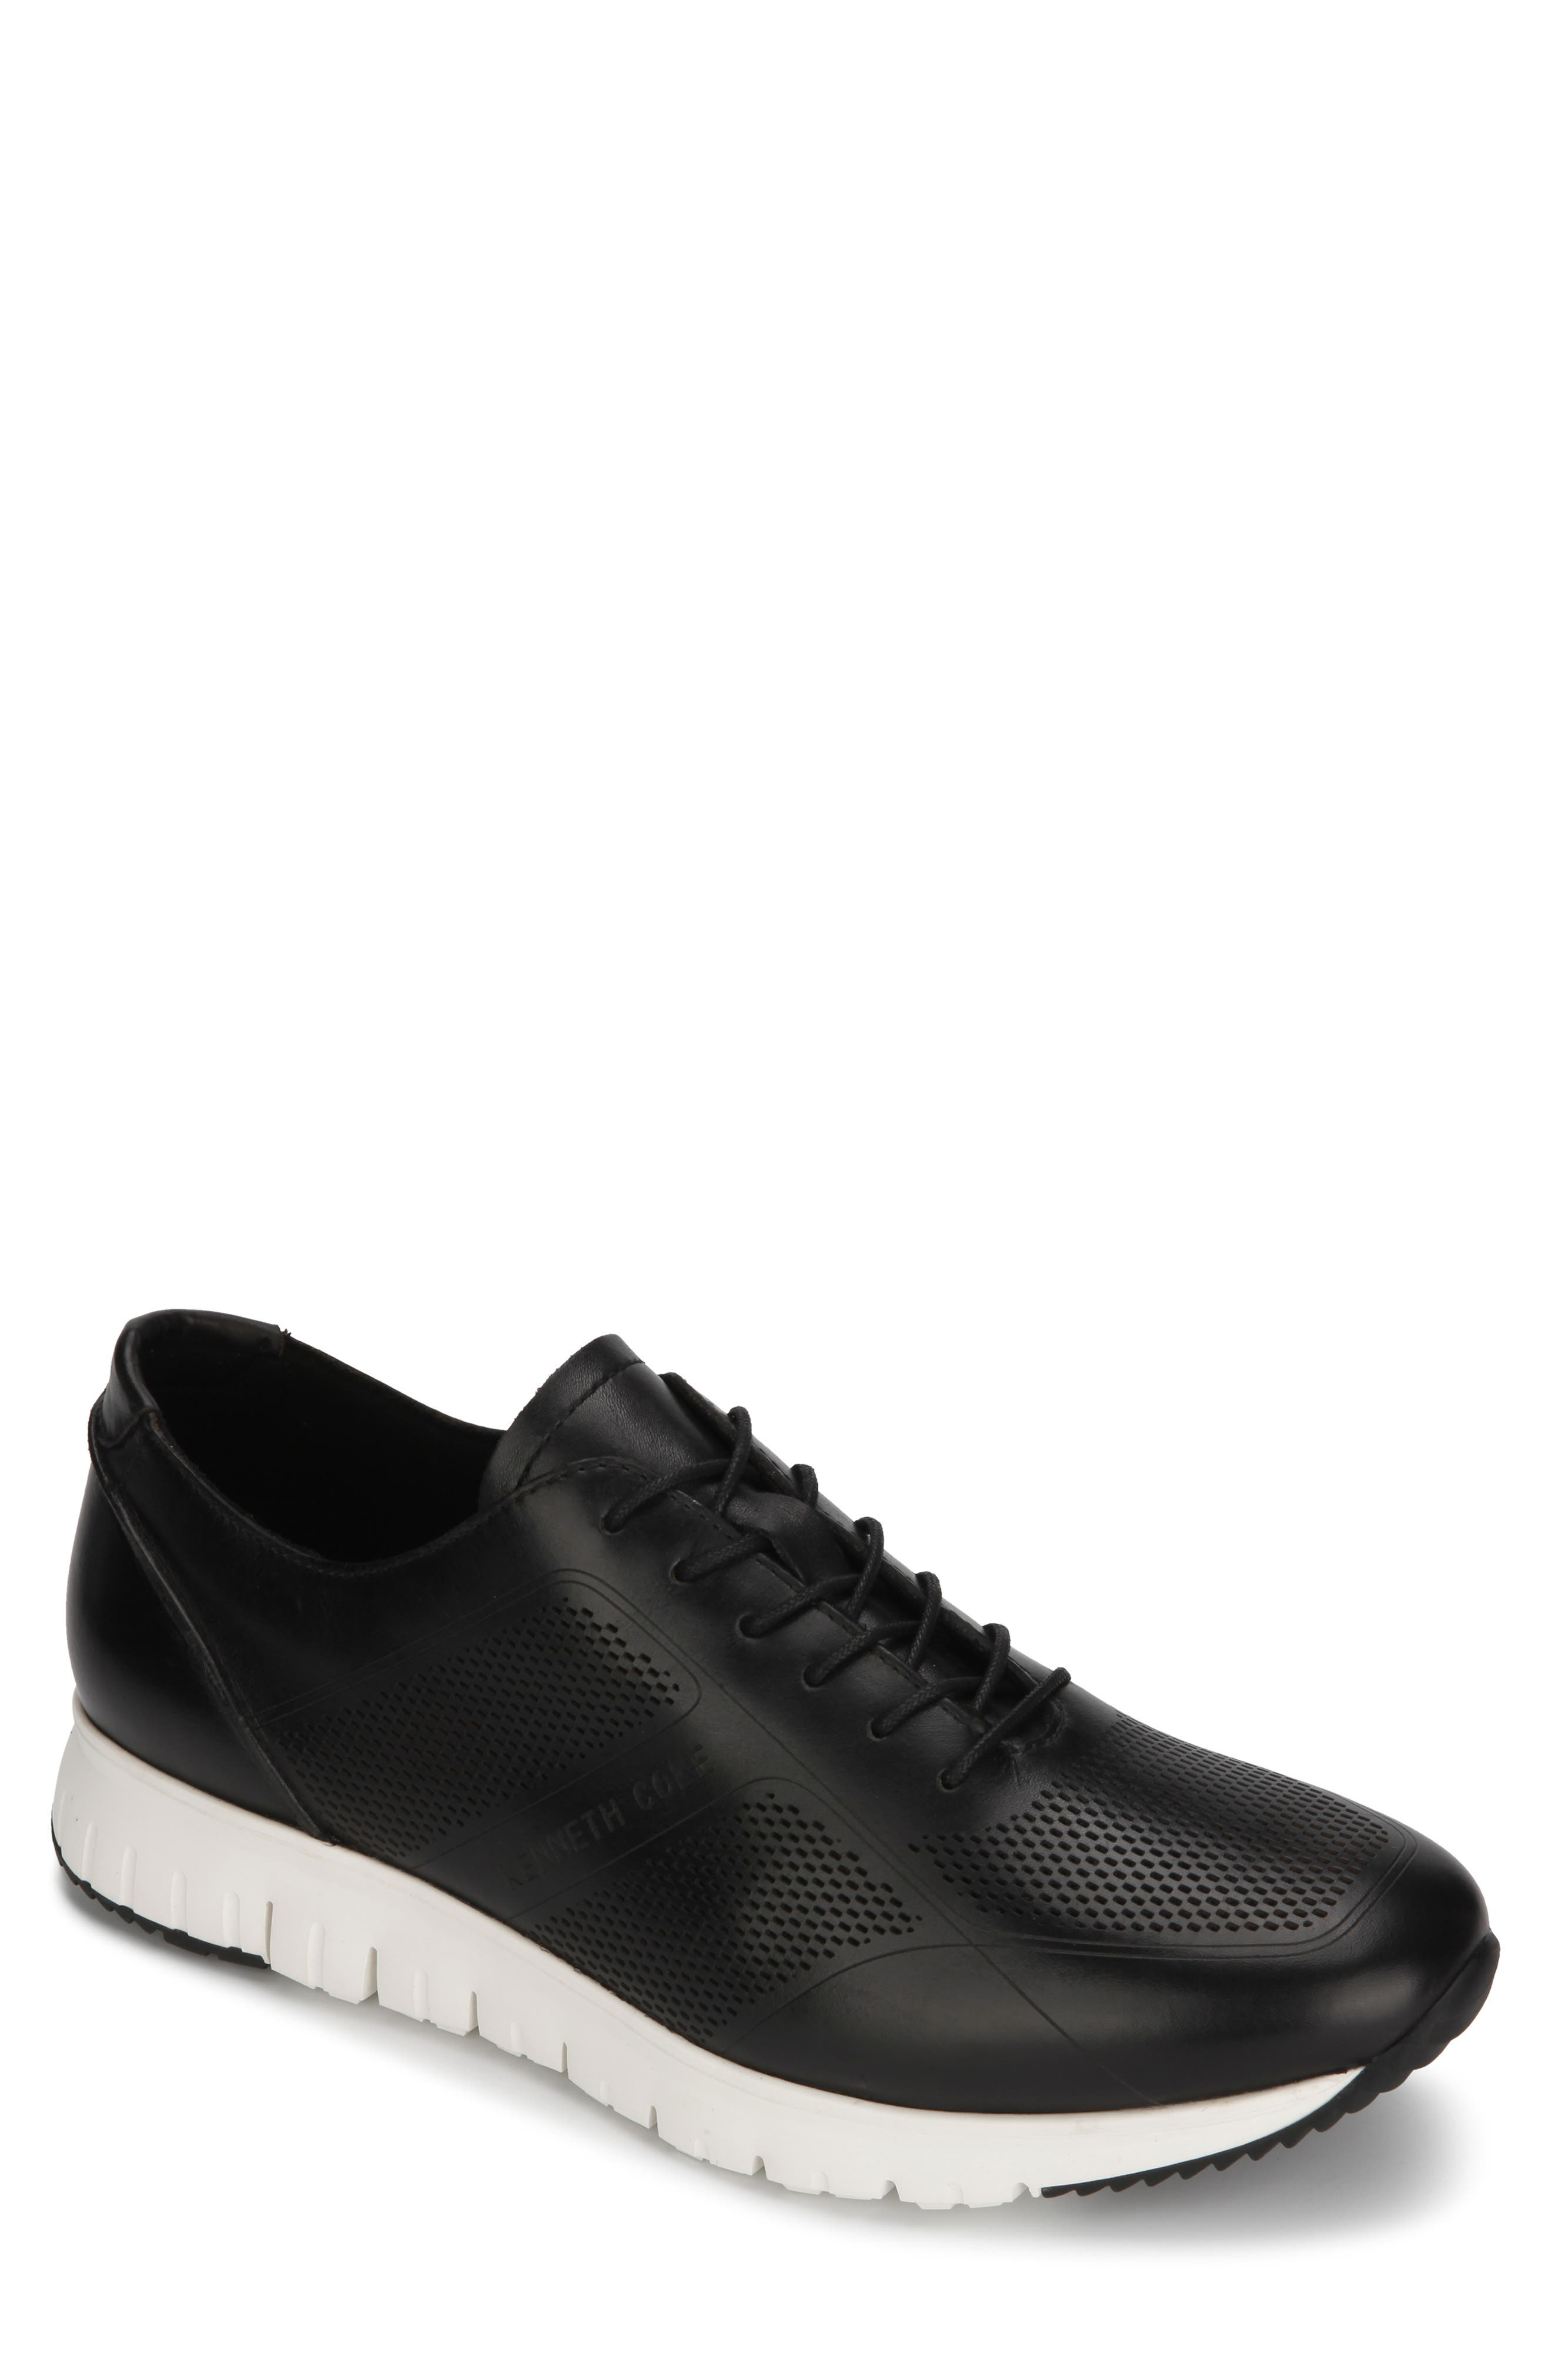 KENNETH COLE NEW YORK, Bailey Sneaker, Main thumbnail 1, color, BLACK LASERED LEATHER